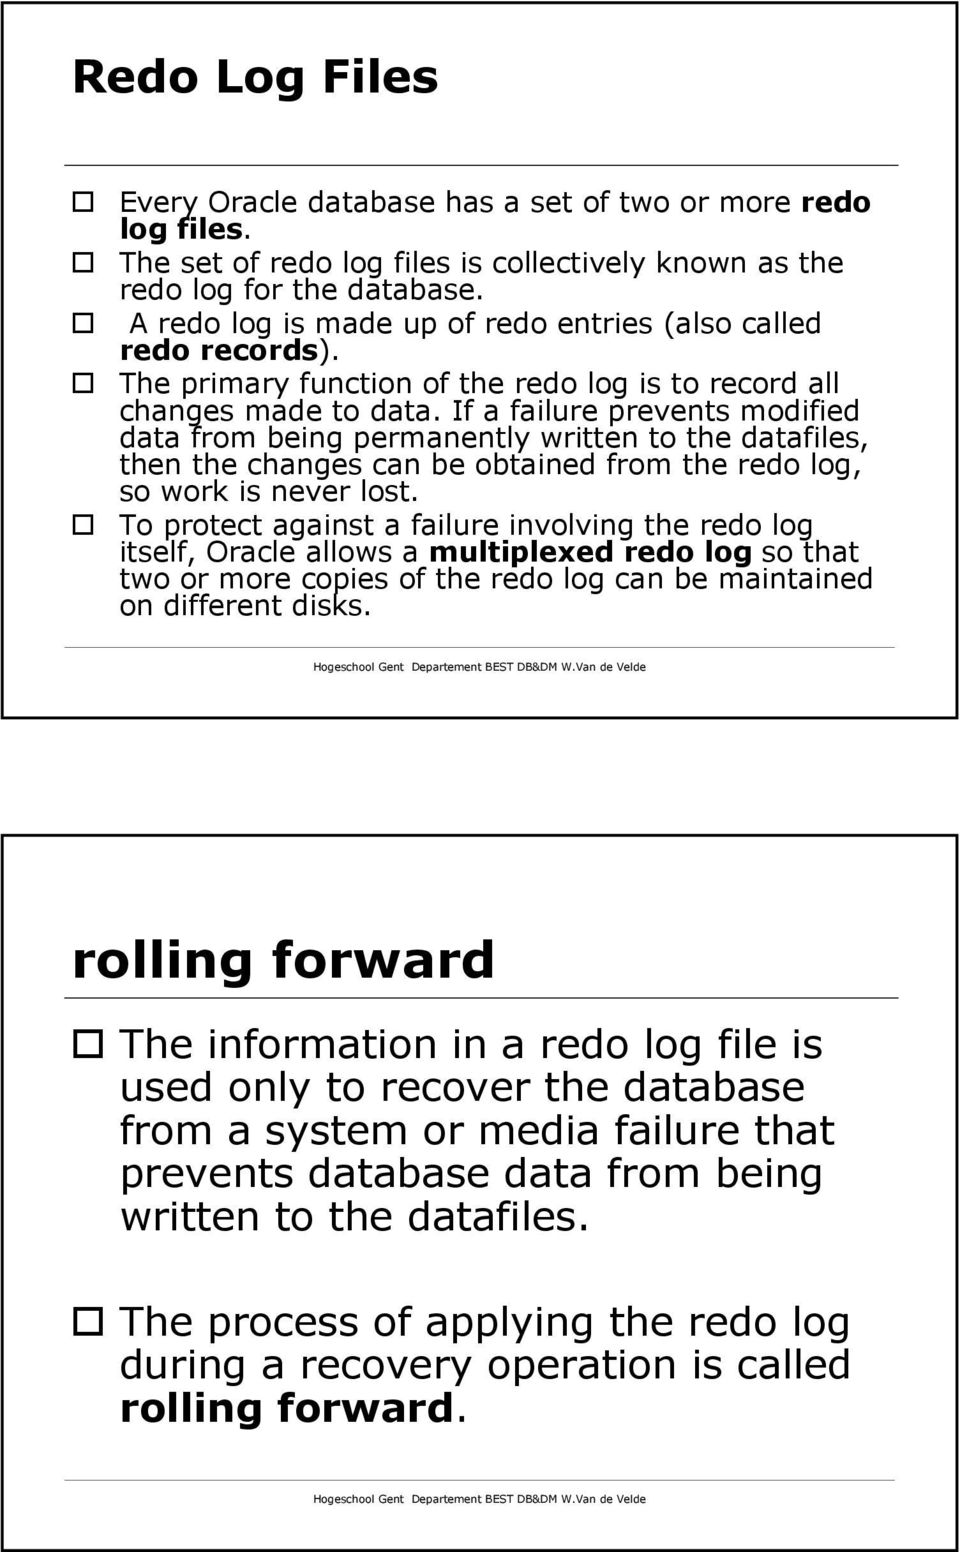 If a failure prevents modified data from being permanently written to the datafiles, then the changes can be obtained from the redo log, so work is never lost.